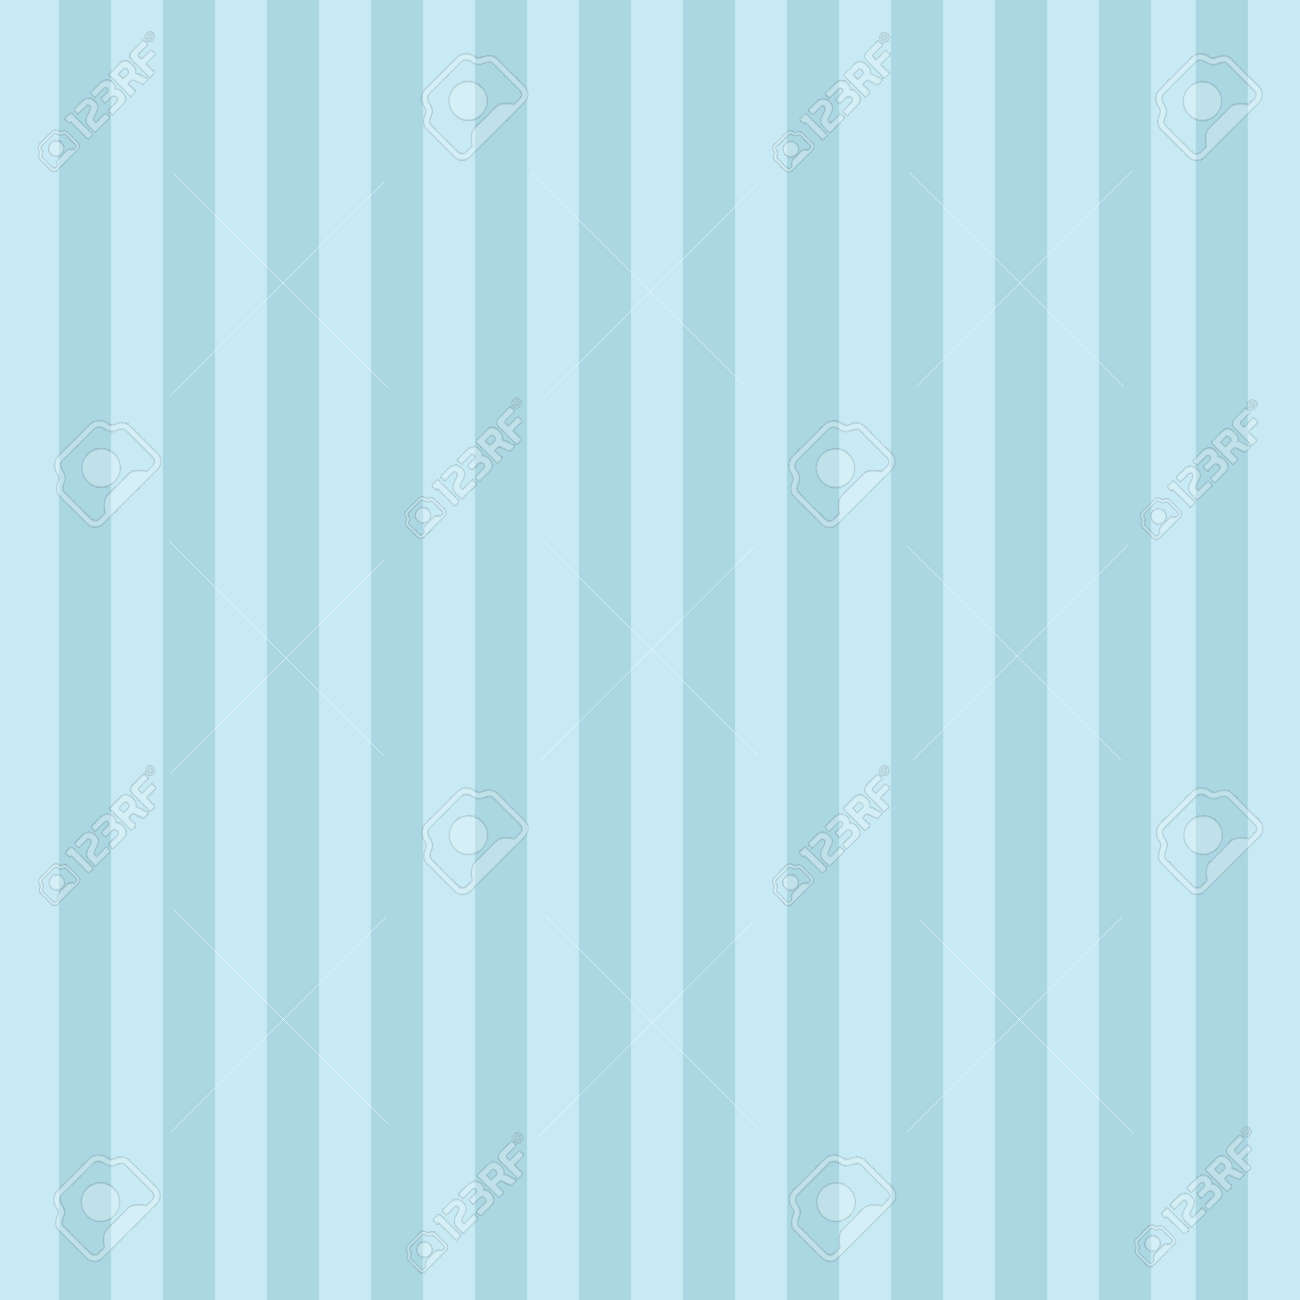 striped colour background for design or templates royalty free cliparts vectors and stock illustration image 29988478 123rf com